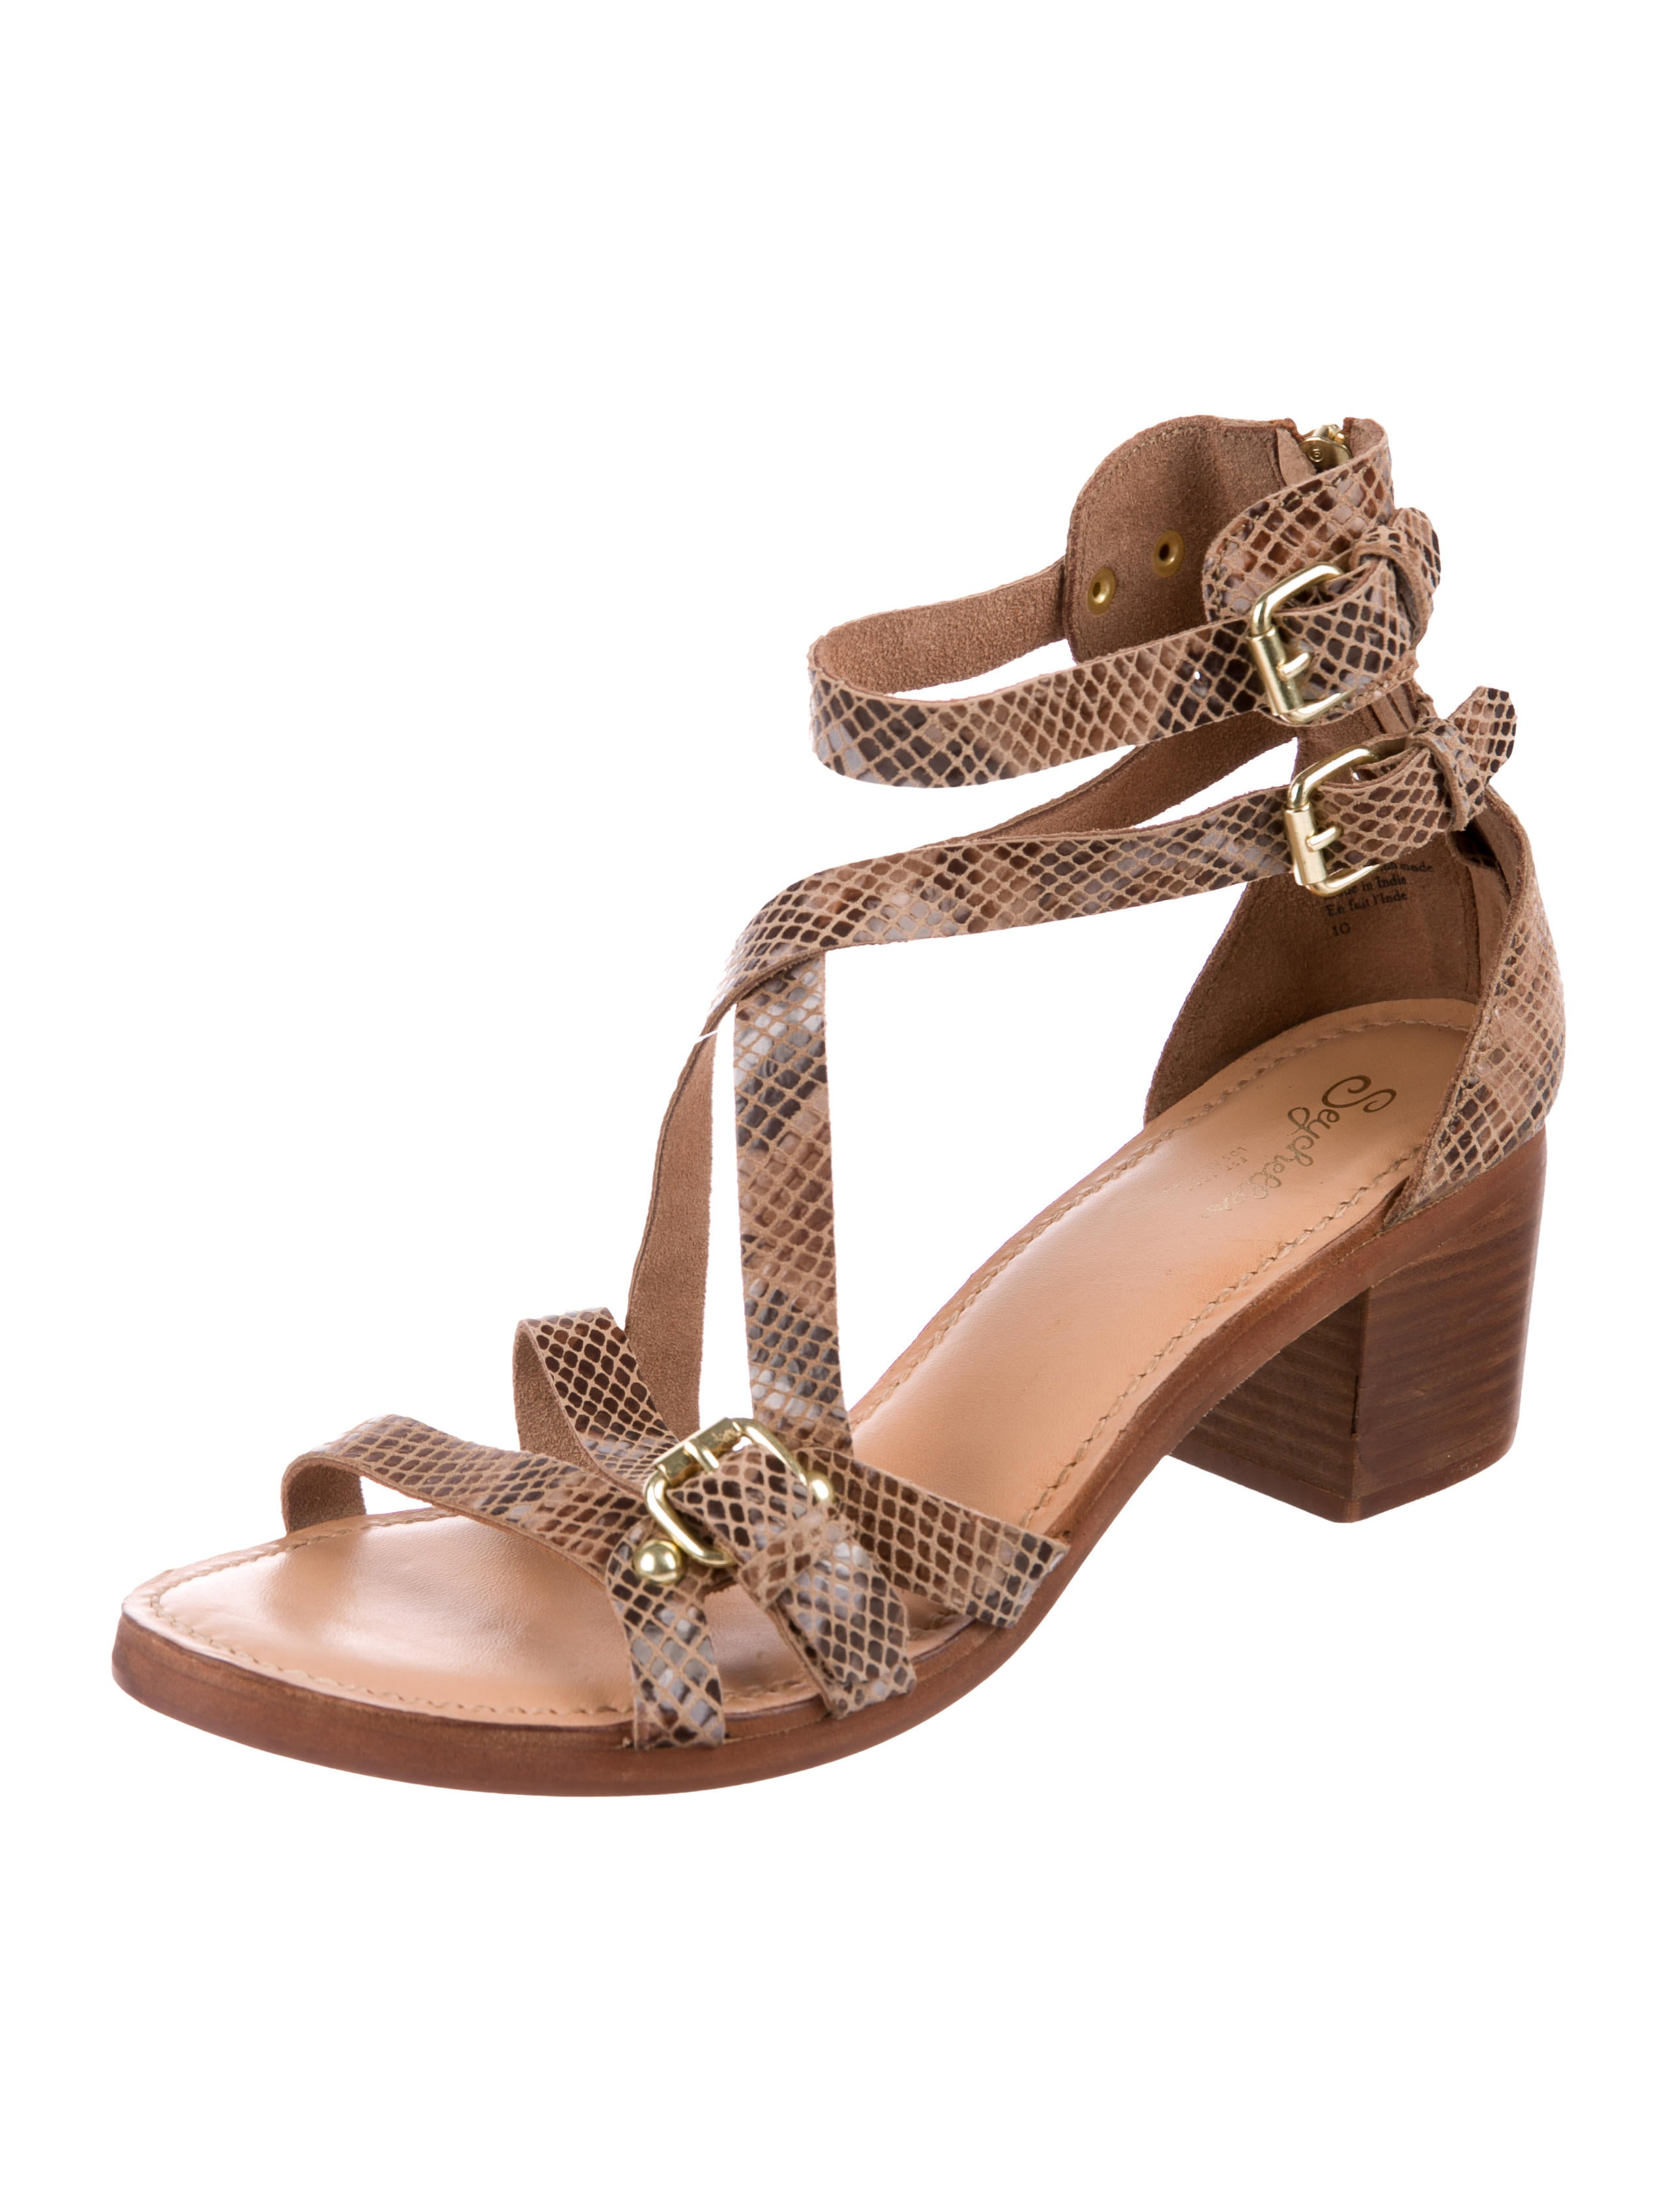 Seychelles Leather Multistrap Sandals clearance exclusive hUu1TT3PQZ